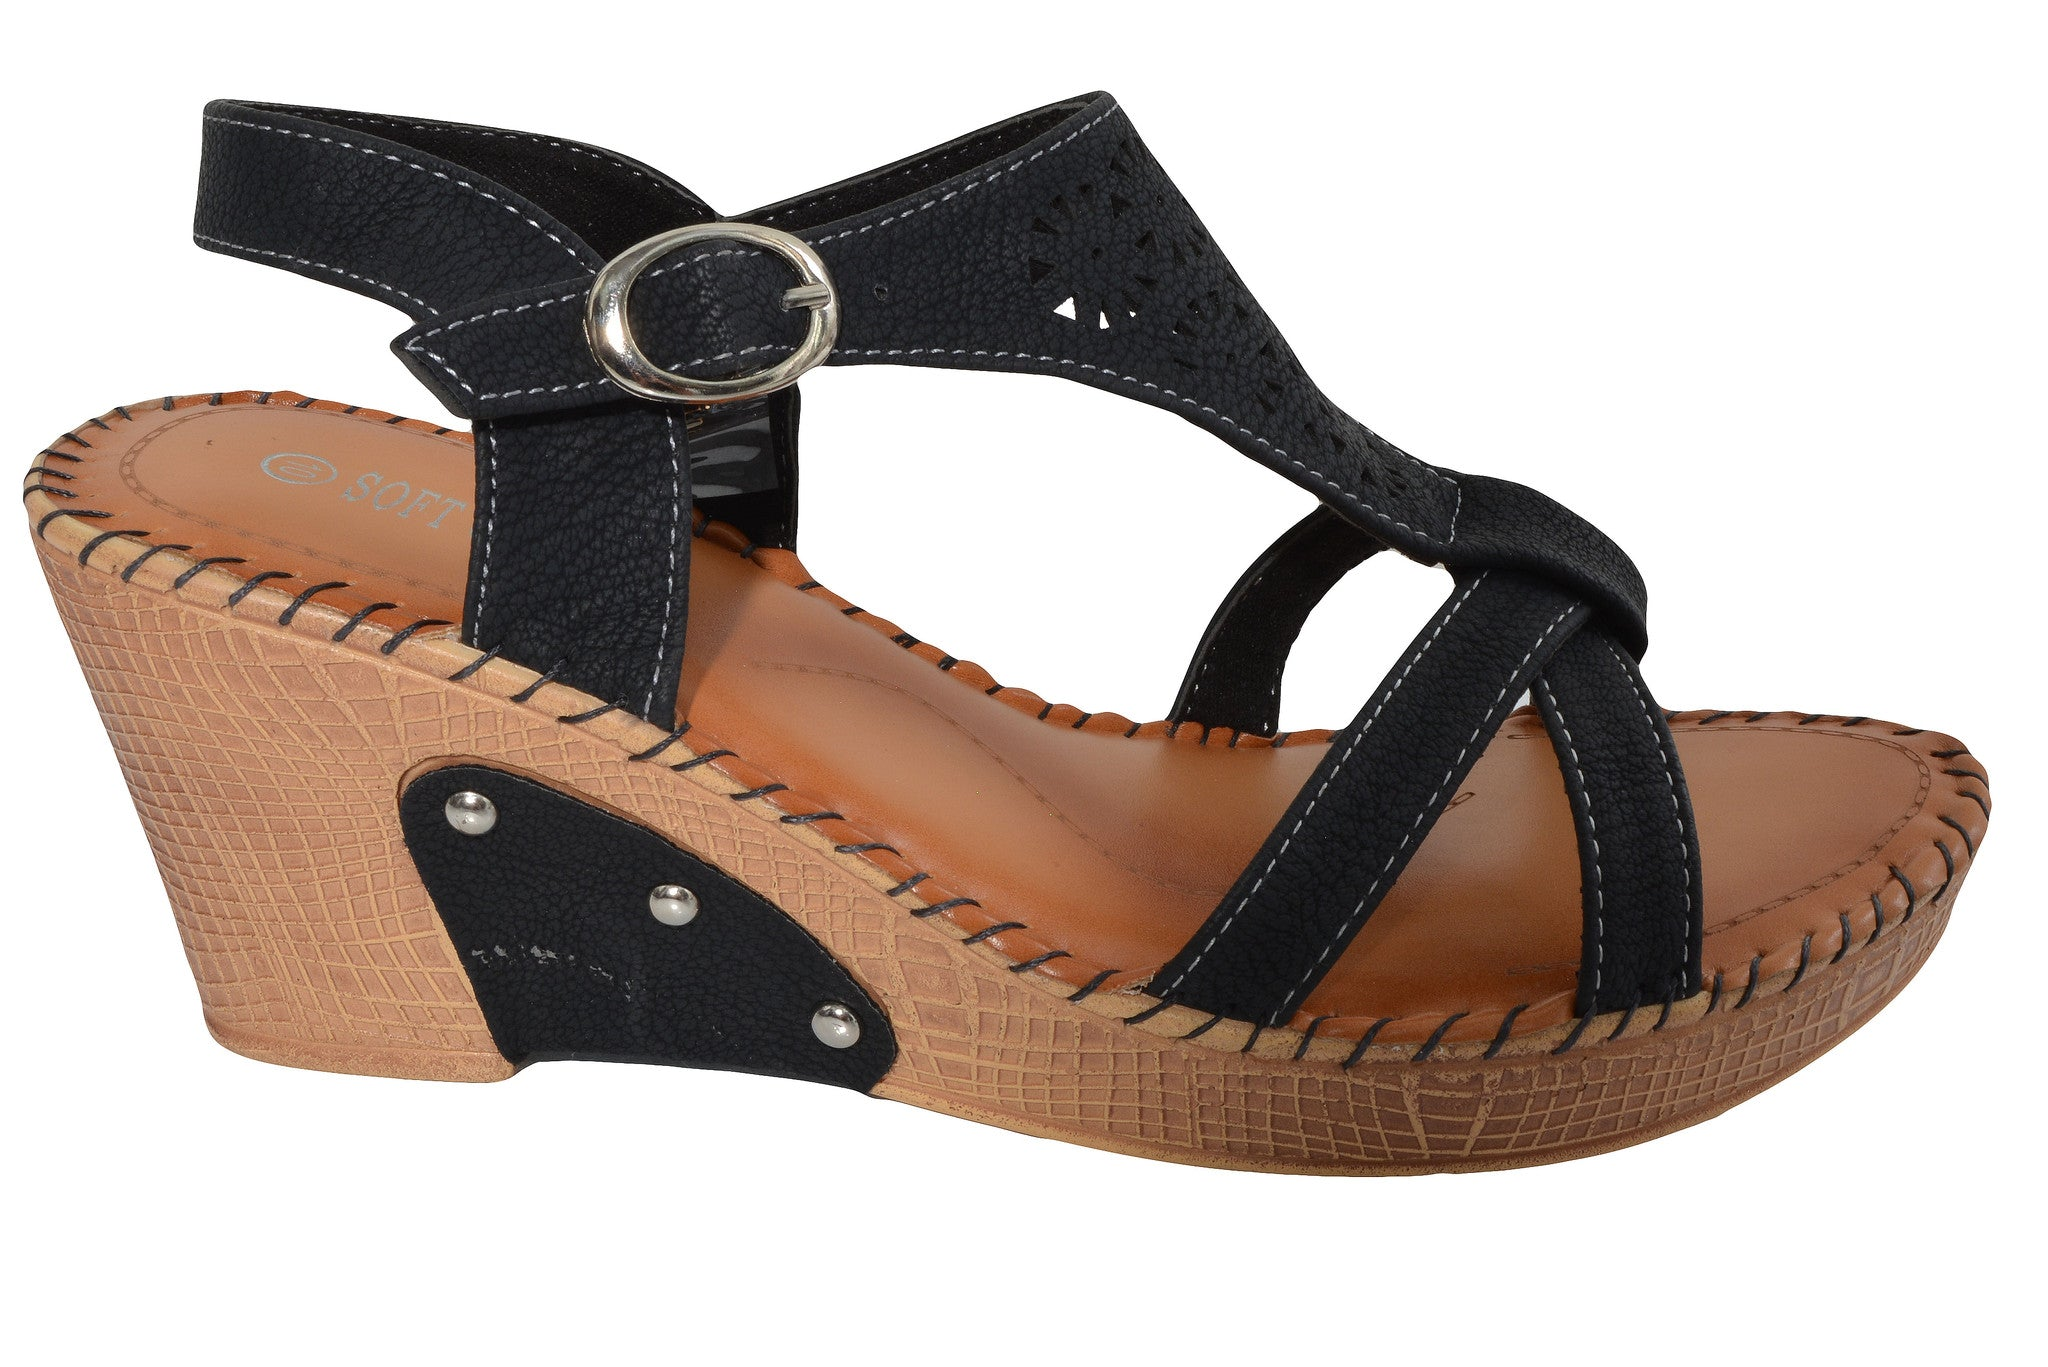 Soft Comfort Platform Wedge Sandals (Black)